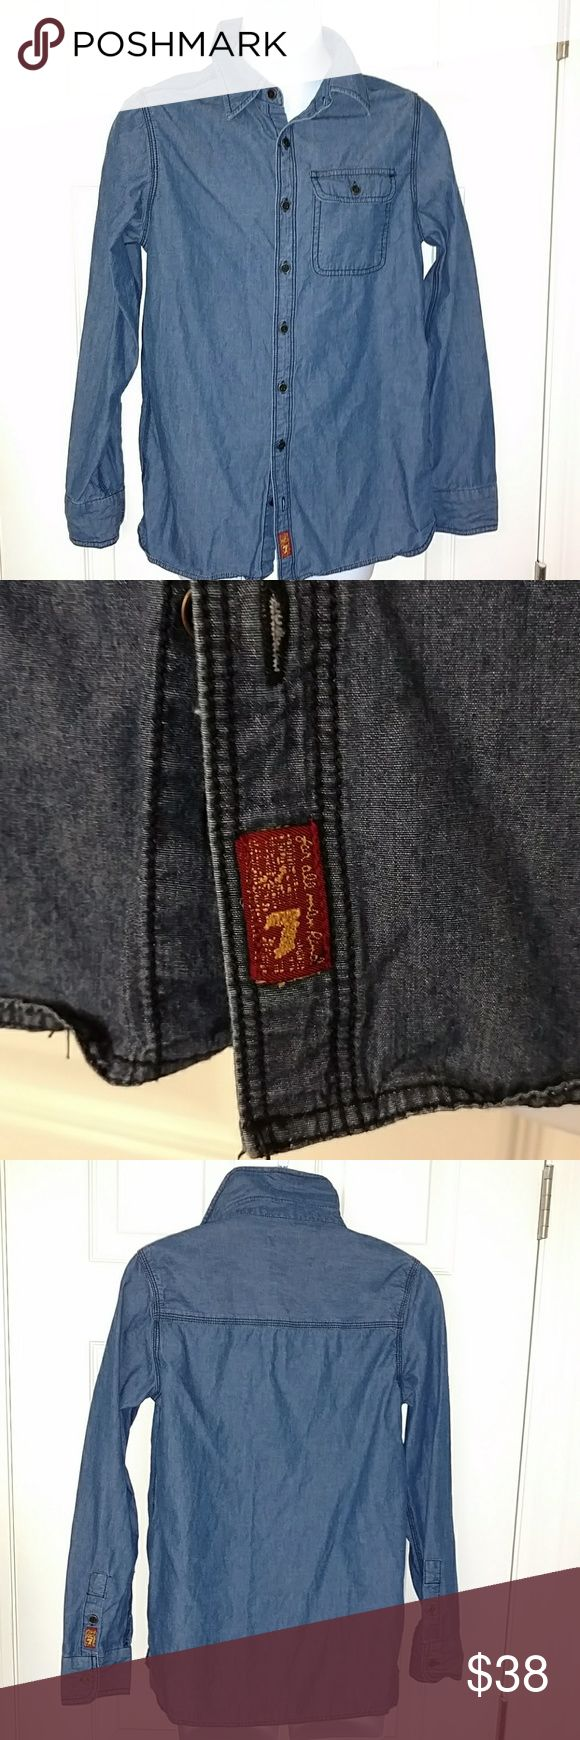 7 for all mankind denim shirt Long sleeved, button up denim shirt. One front pocket with flap. Could be for girls or boys. In great shape. Size L. 7 For All Mankind Shirts & Tops Button Down Shirts